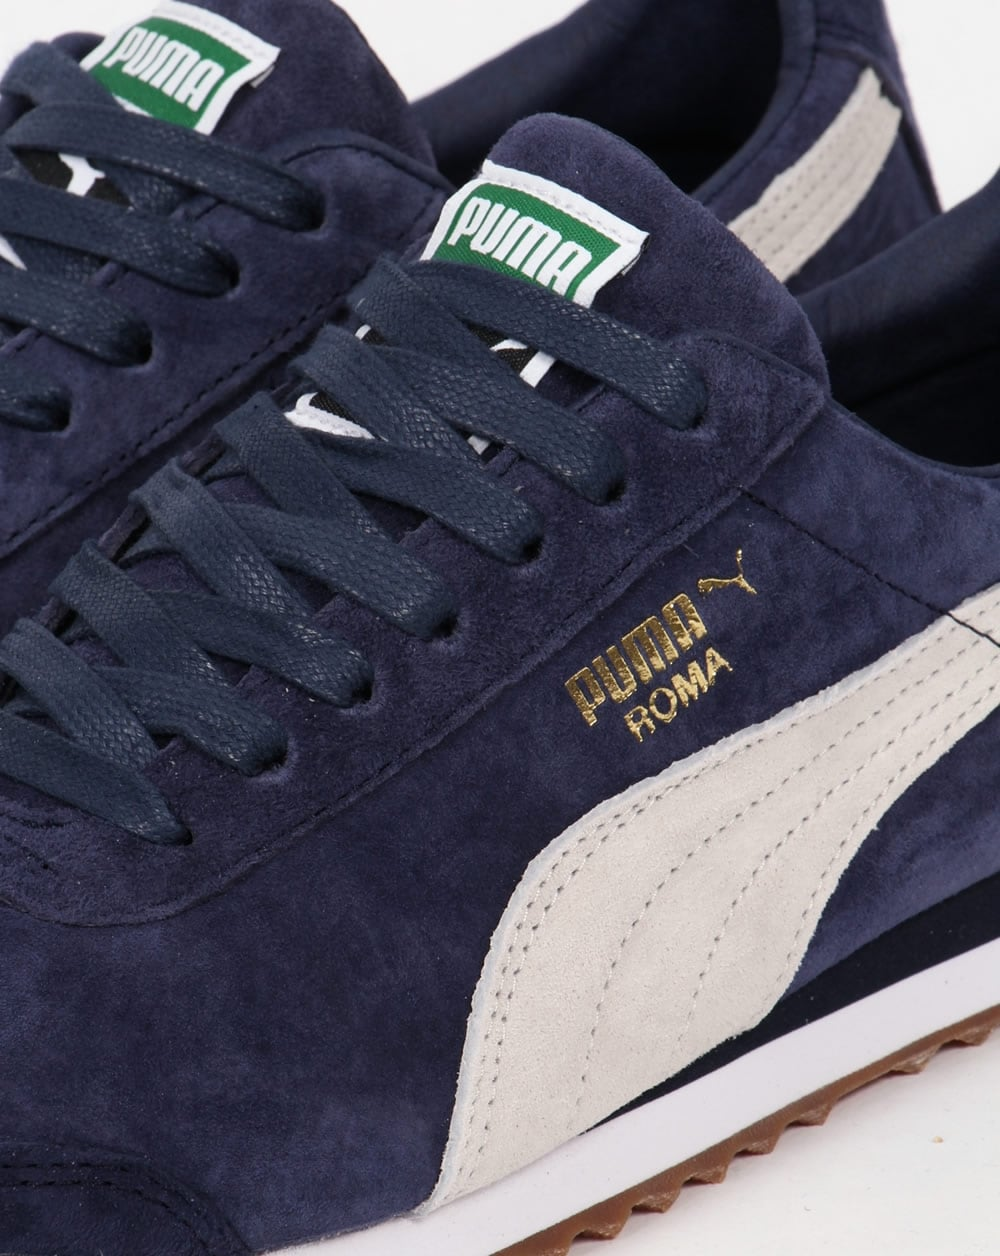 buy online 1680e 168c3 Puma Roma Trainers Navy/White